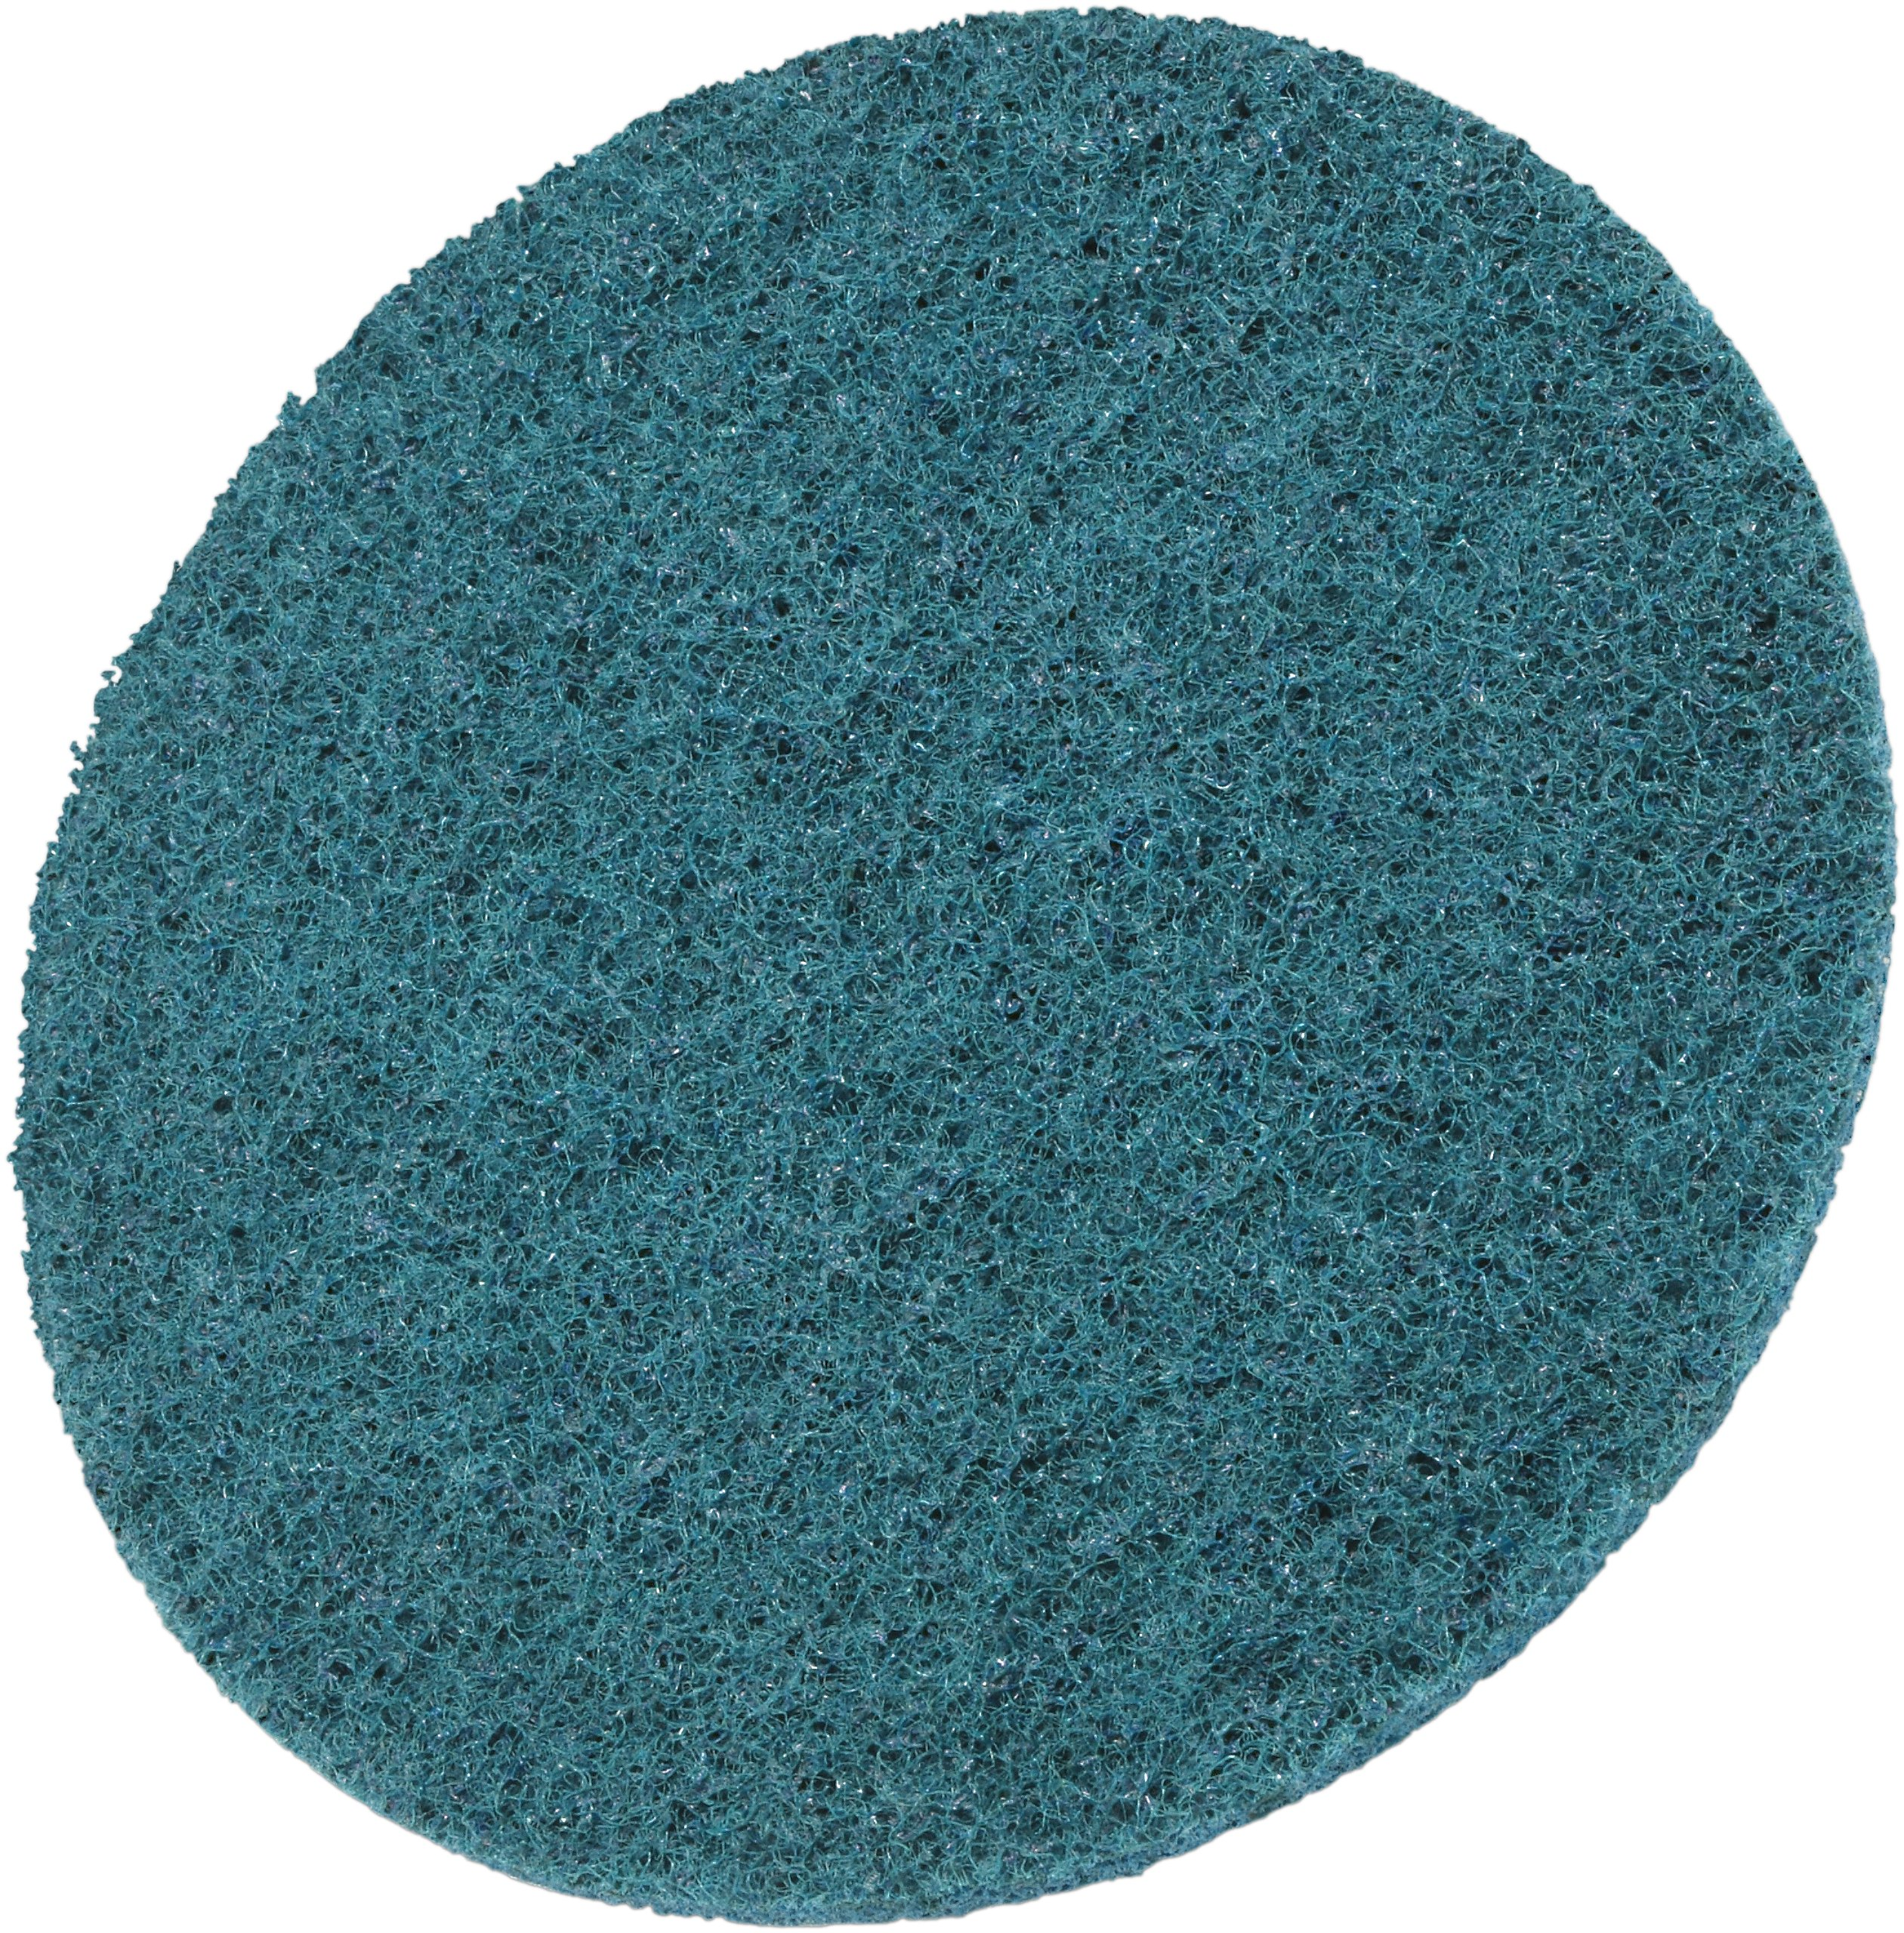 Scotch-Brite(TM) Surface Conditioning Disc, Hook and Loop Attachment, Aluminum Oxide, 6 Diameter, A Very Fine Grit (Pack of 50)